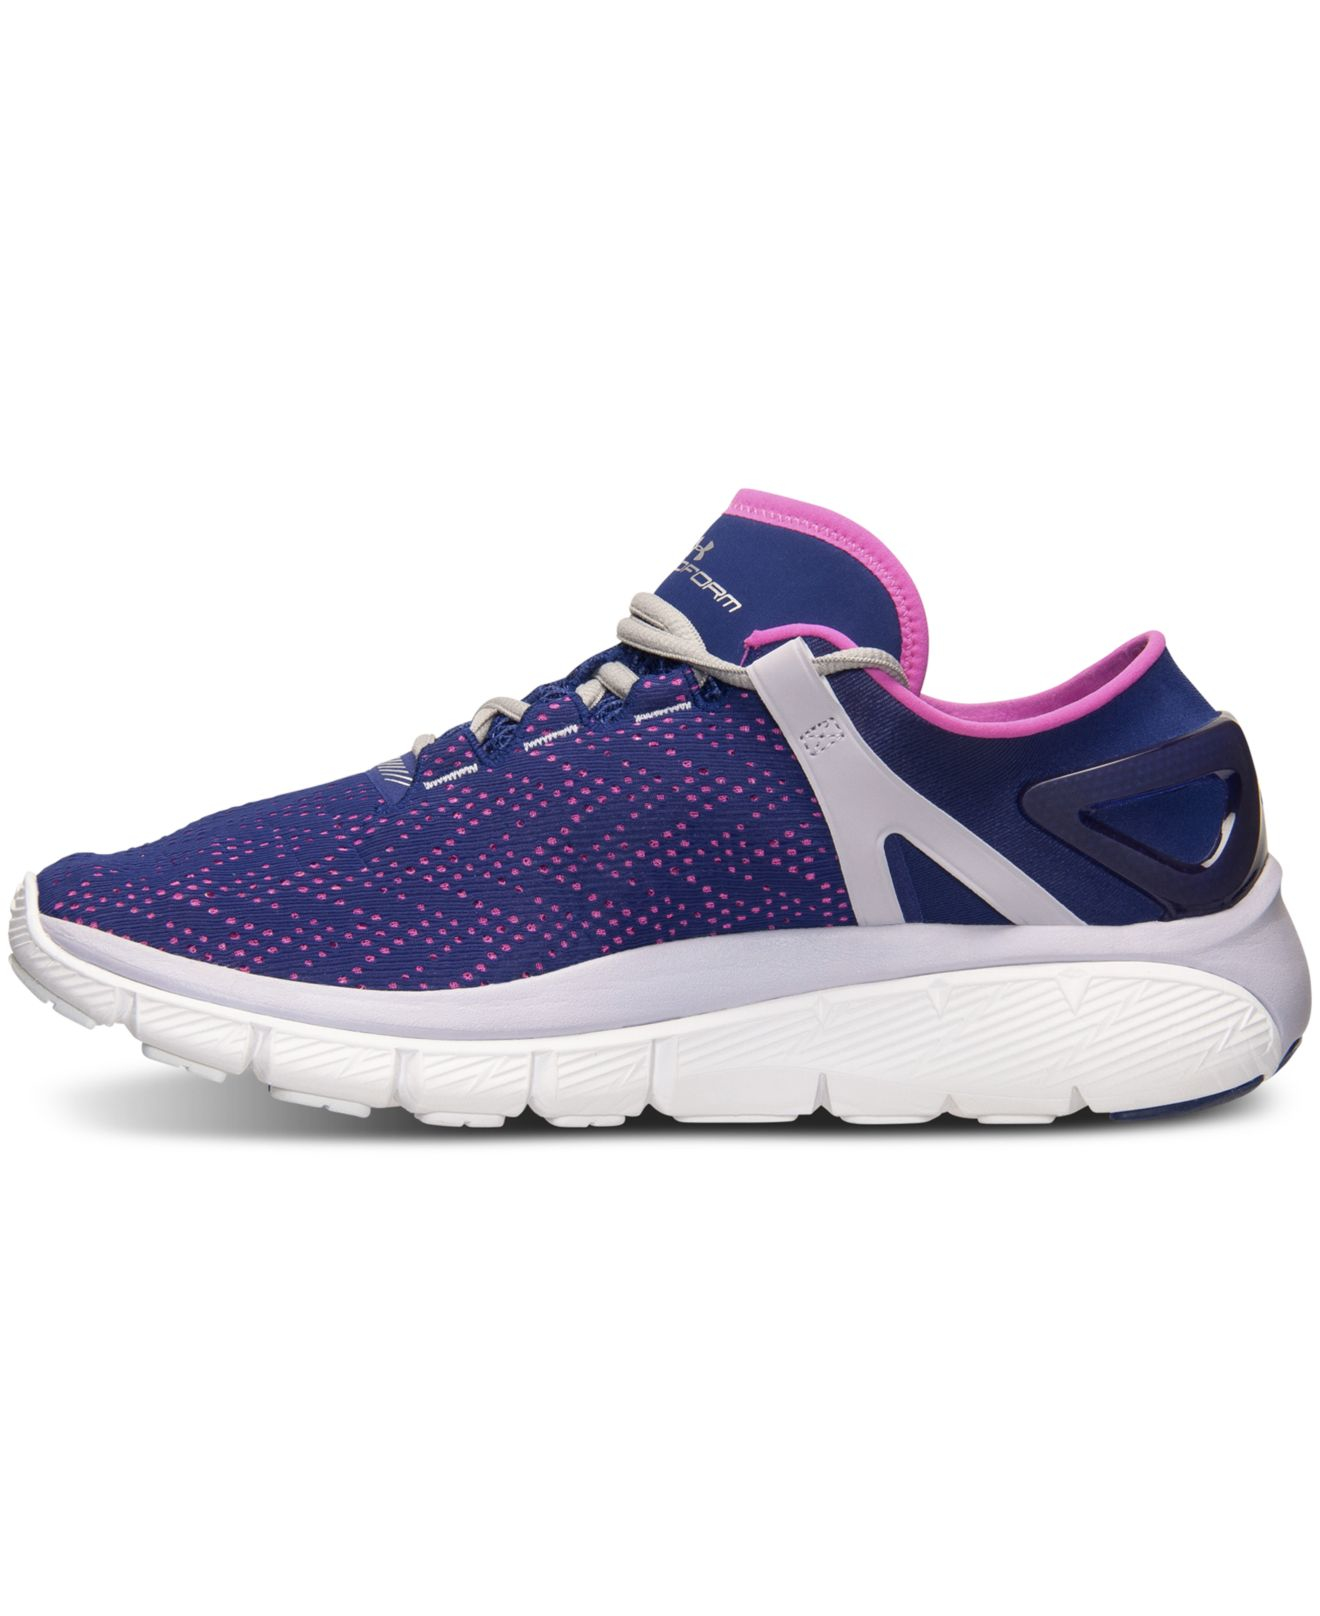 a07524a4c5b Lyst - Under Armour Women s Speedform Fortis Running Sneakers From ...